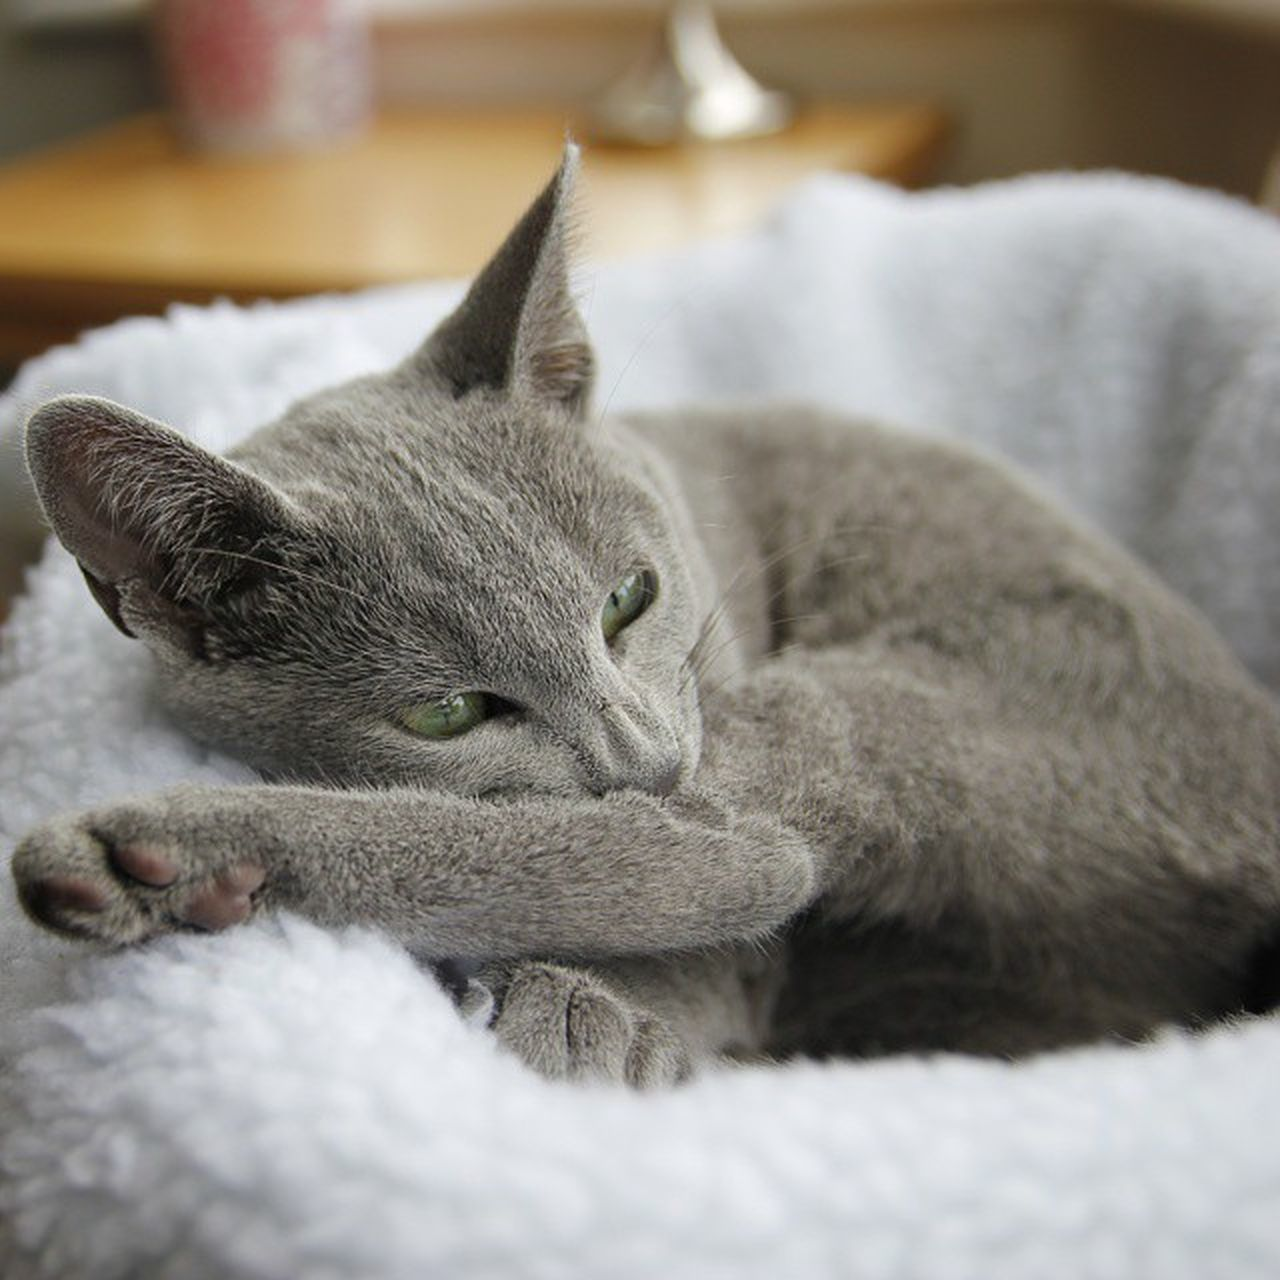 Afternoon grooming session 😺 Catsofinstagram Kittensofinstagram Russianbluesofinstagram Russianbluekitten RussianBlue Russianbluecat Smartcat Instacat Instakitty Kittens Greycat Silvercat Bluecat Blue Cat_features ロシアンブルー Propetsfeature Rosyjskiniebieski Nofilter Catsmosh Nofilter 550d